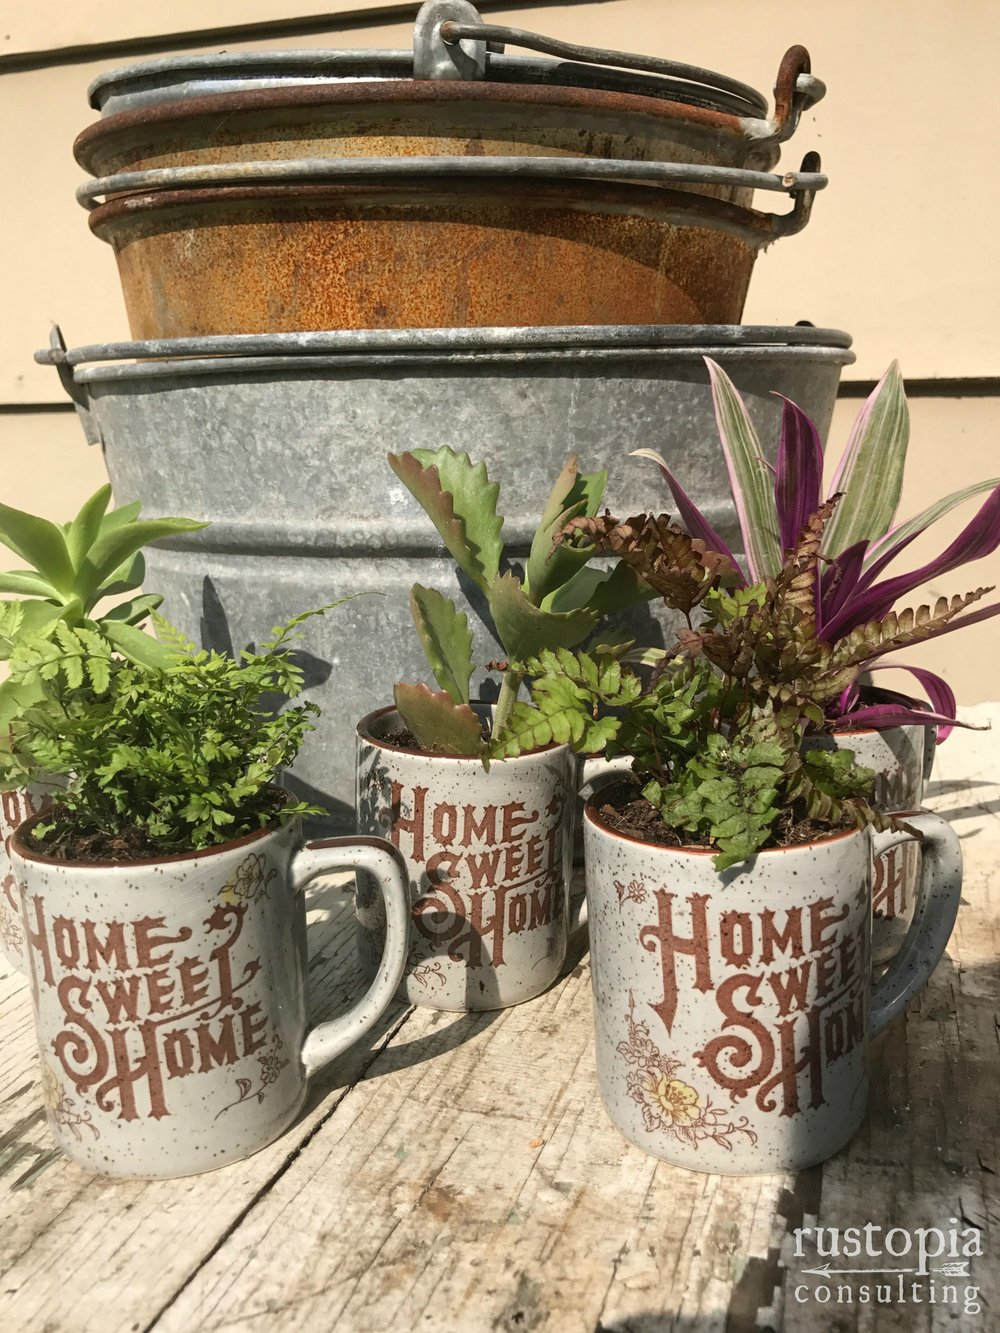 Three Home Sweet Home mugs as planters for mini plants. || RustopiaConsulting.com